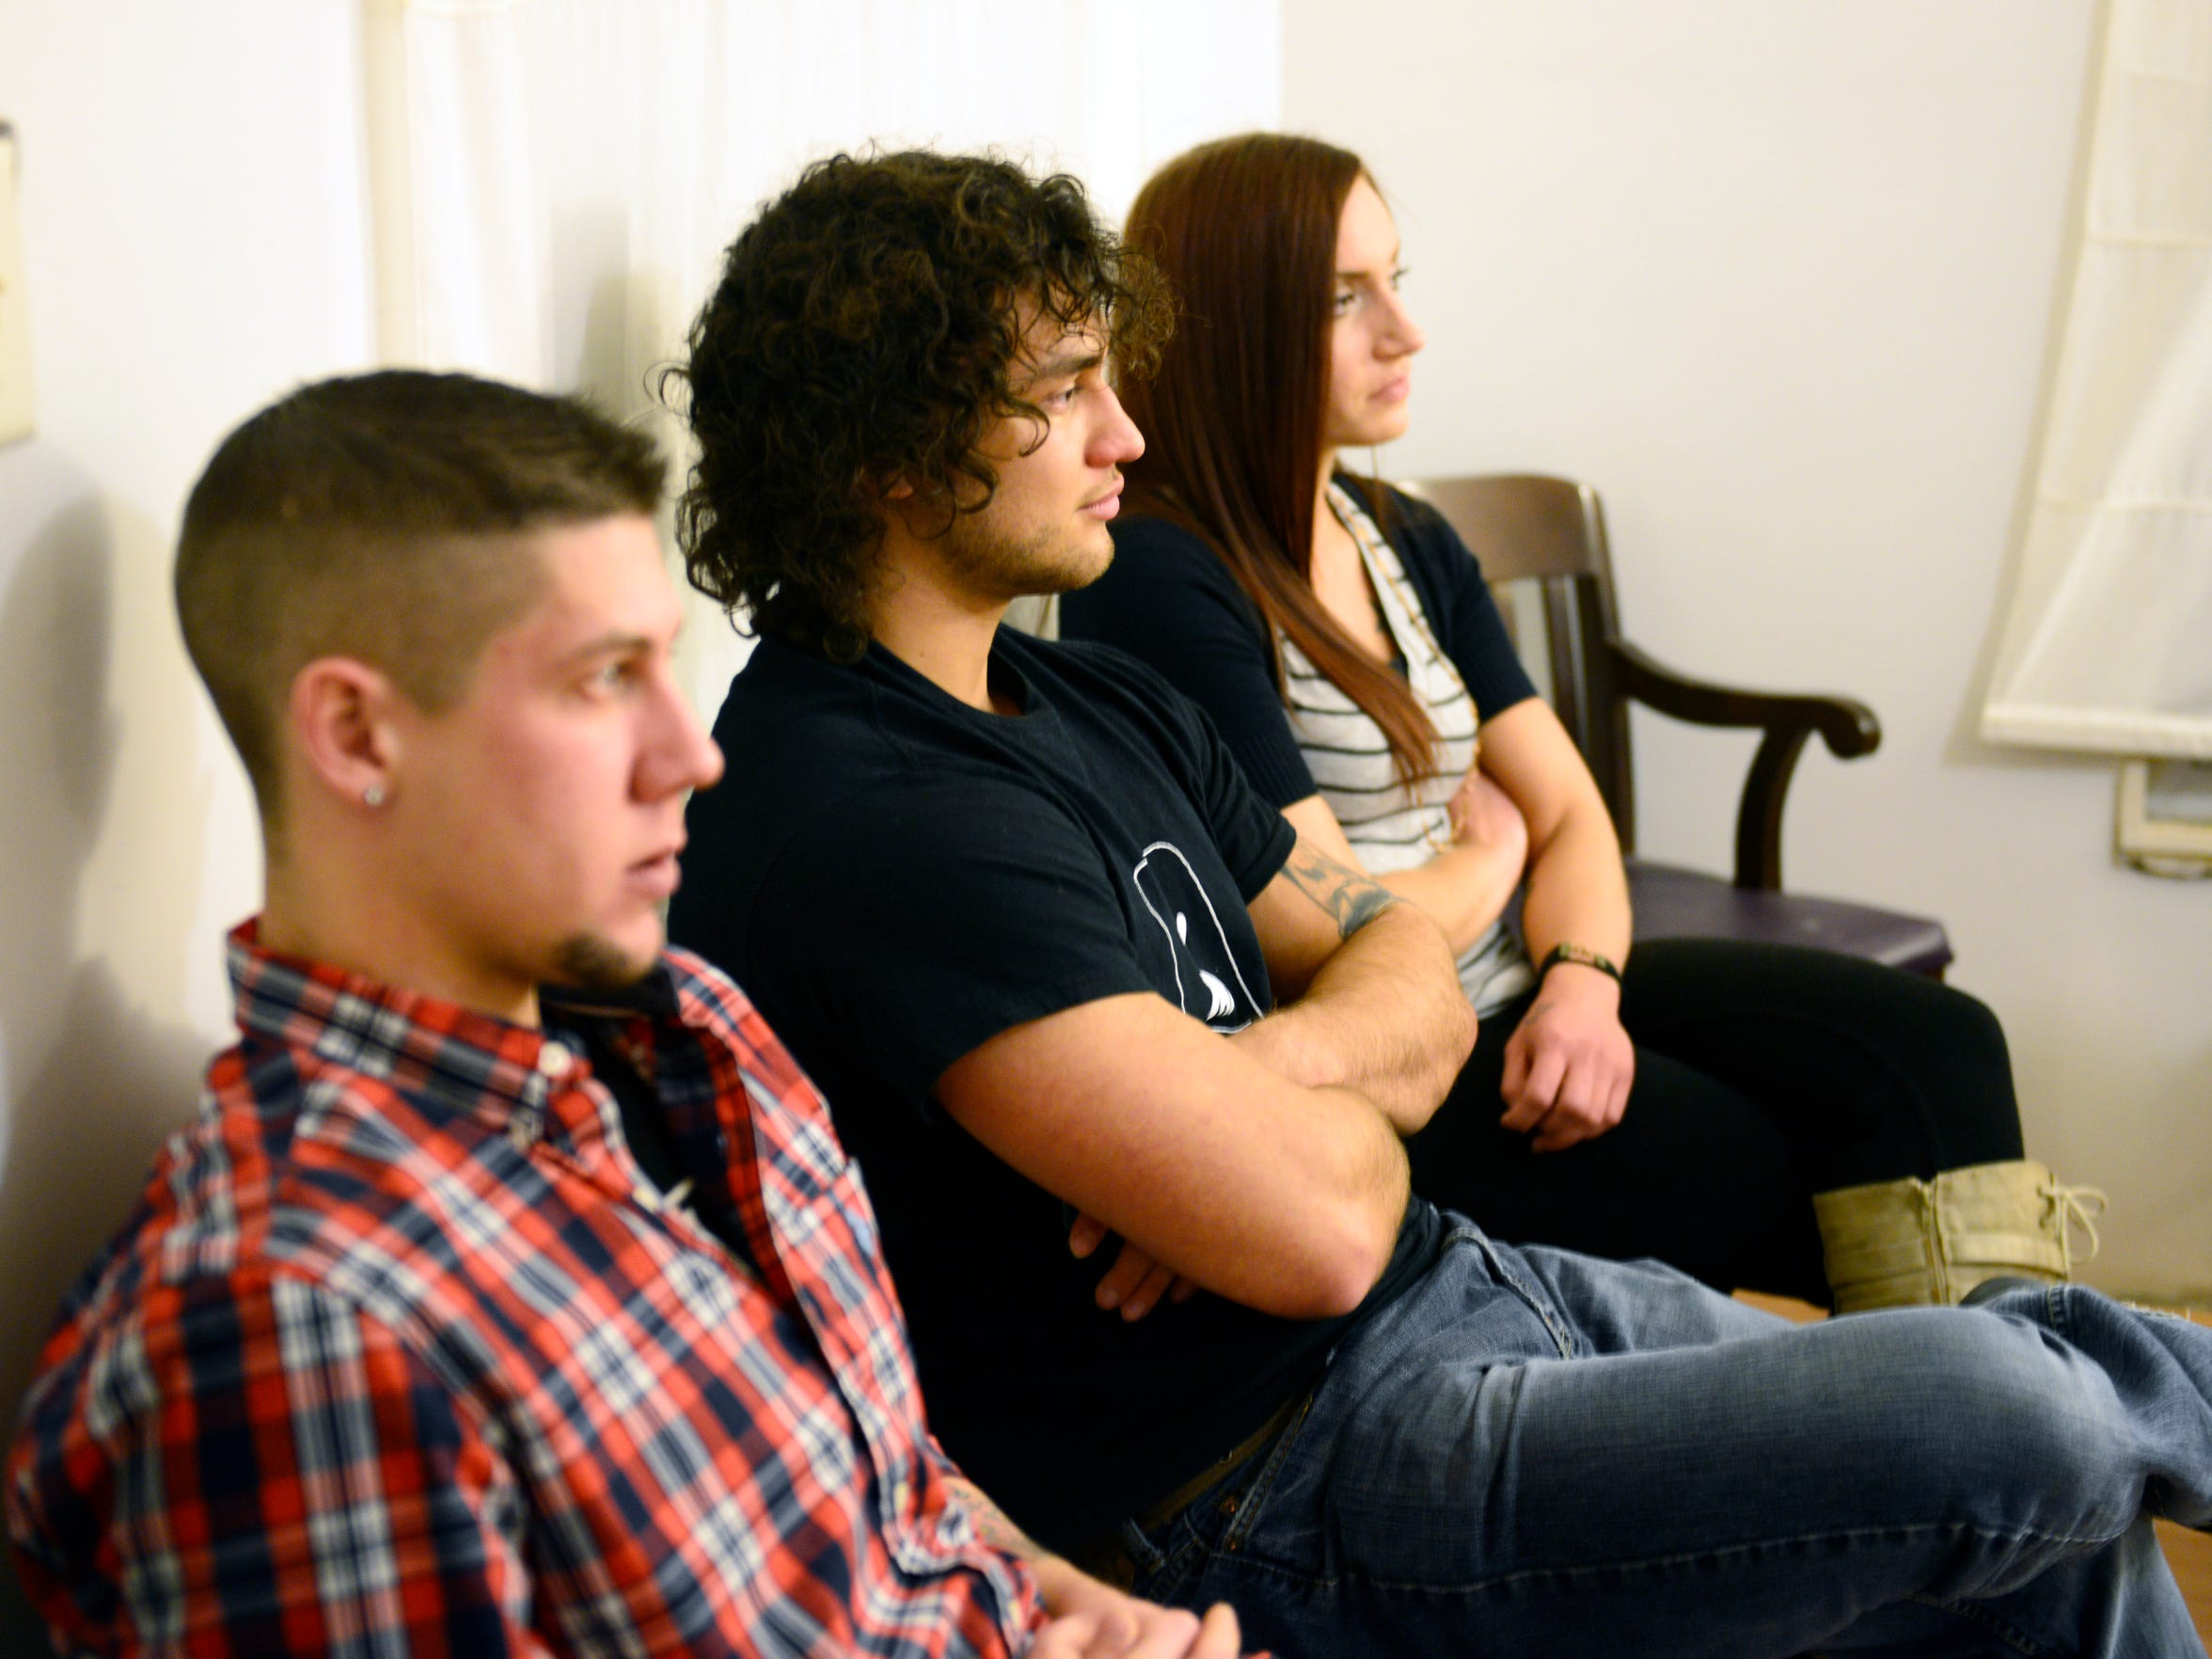 Matt Stookey, 25, of Castalia, from left, Richie Webber, 24, of Clyde, and Kayla Davis, 26, of Bellevue attend a heroin and opiate addiction meeting at Micah House in Fremont.